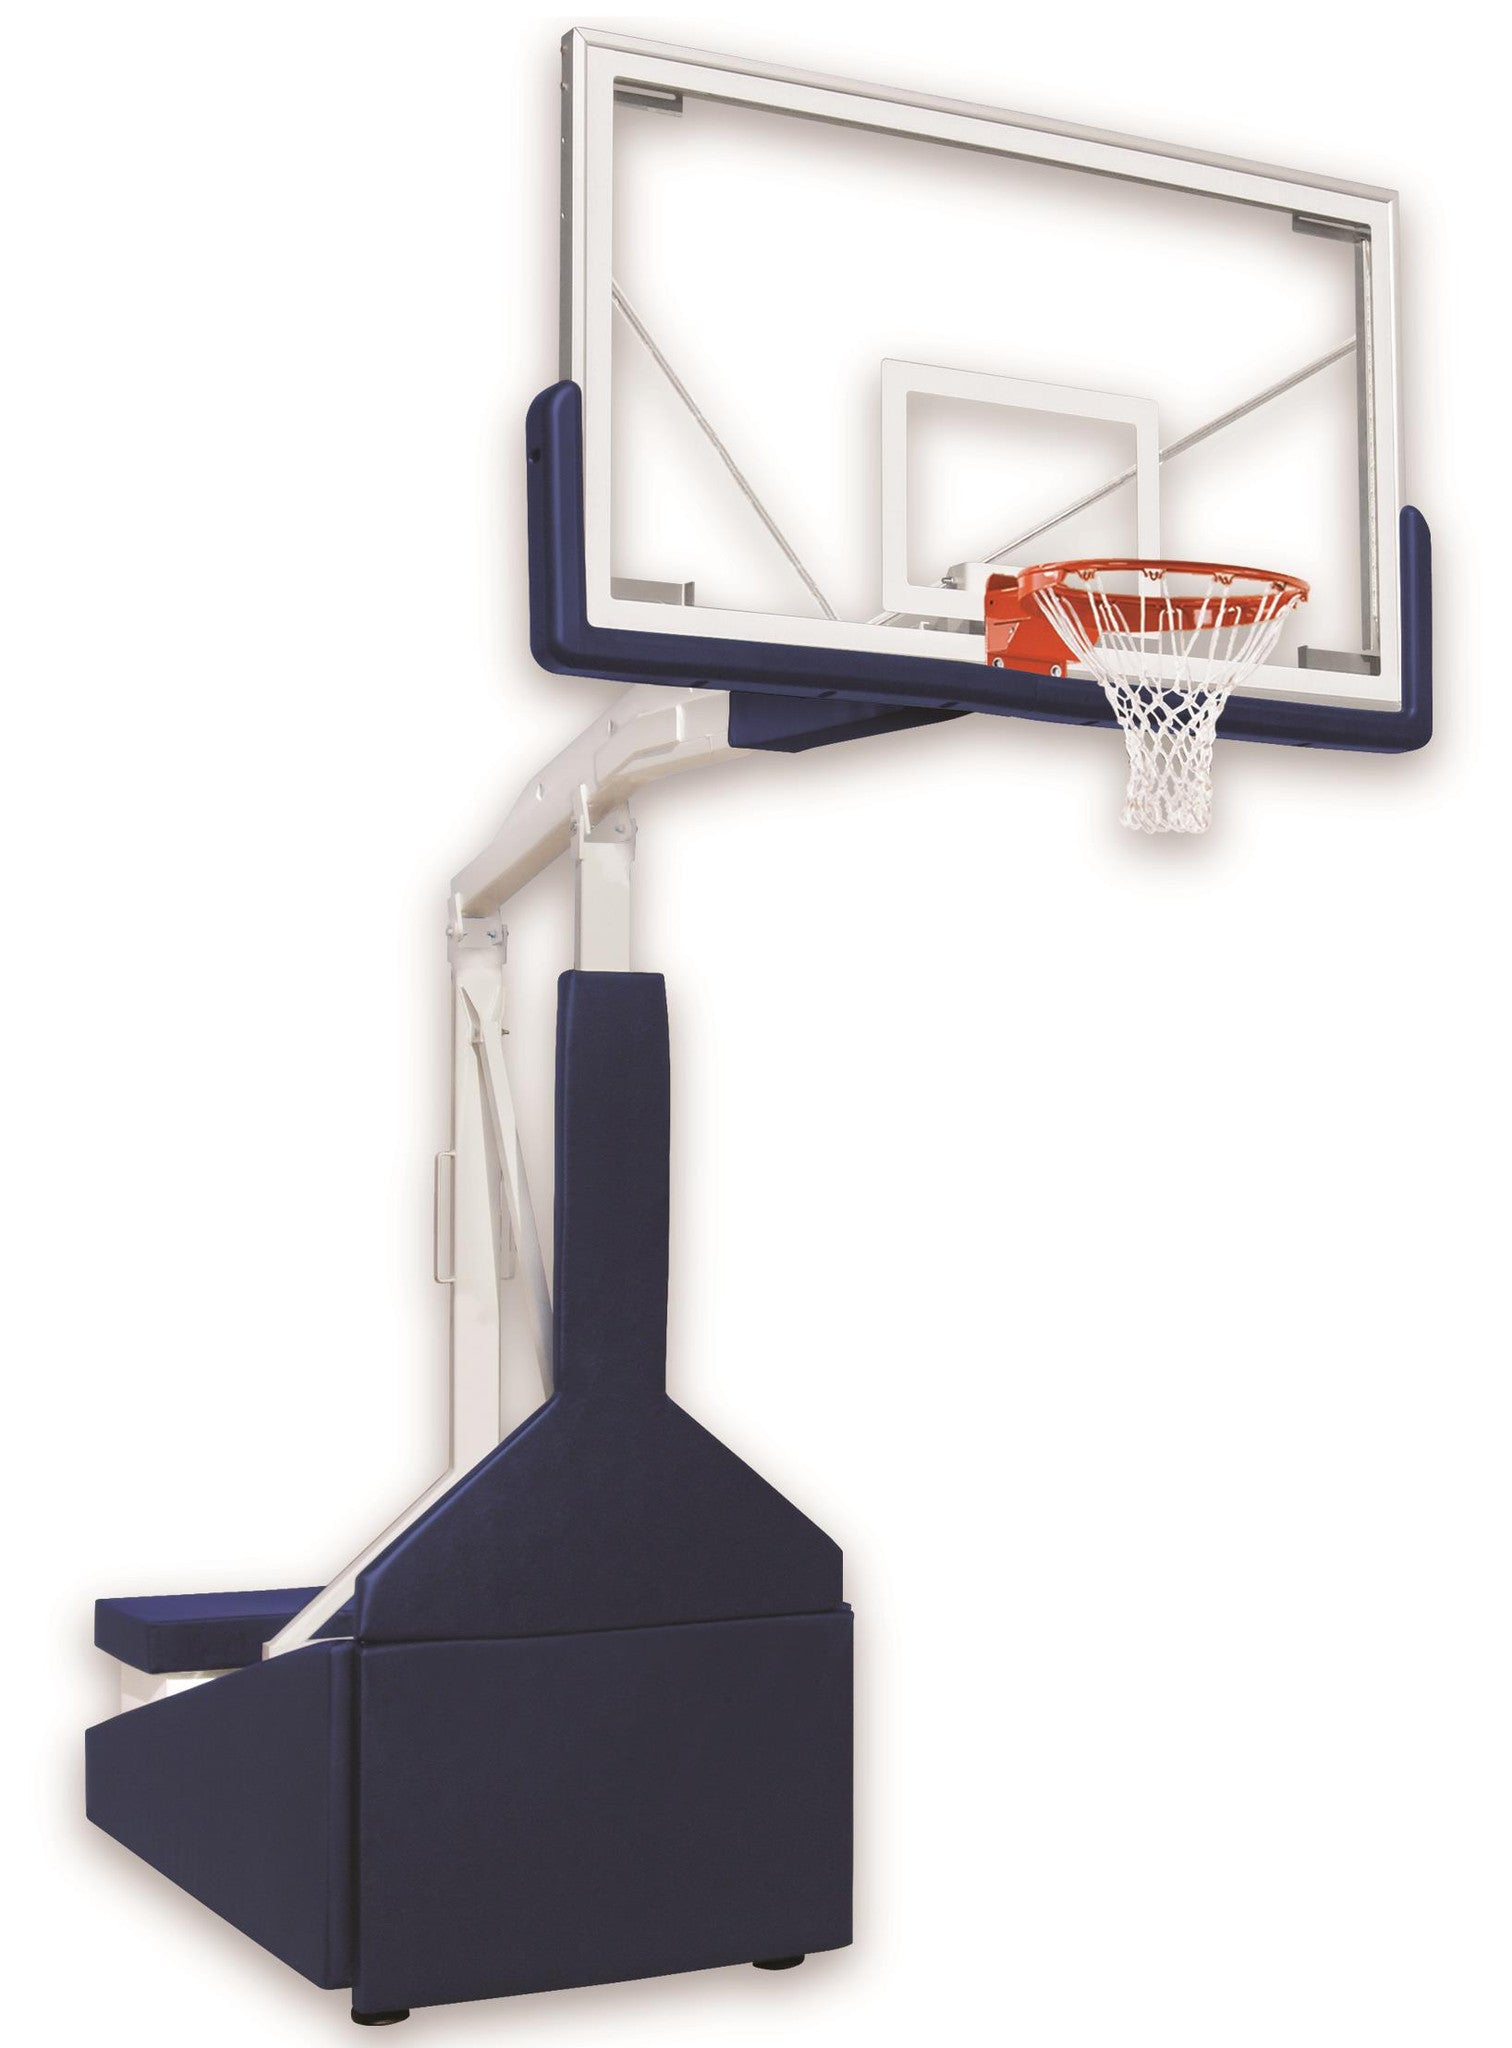 First Team Tempest Triumph ST Portable Adjustable Basketball Hoop 72 inch Tempered Glass for Standard Floors